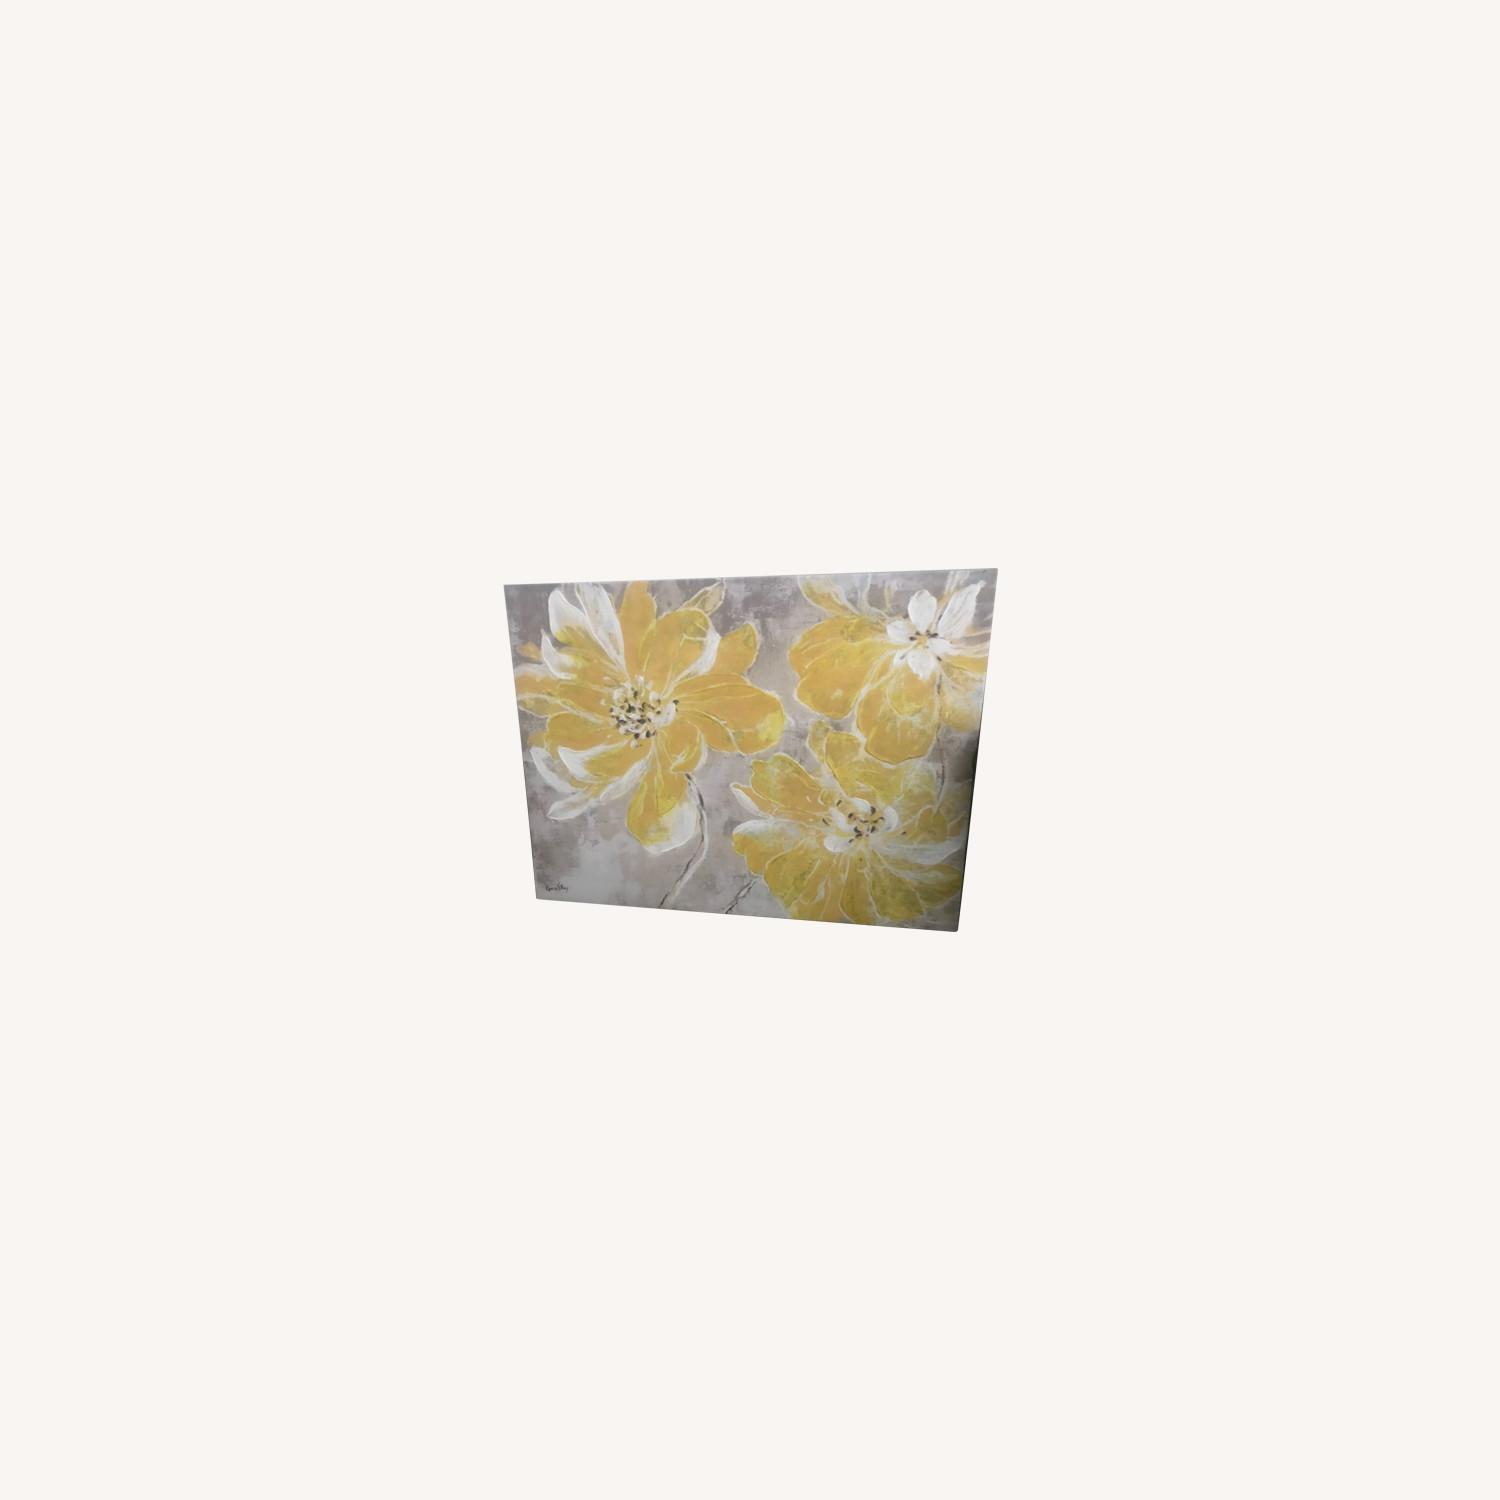 Gray & Yellow Floral Canvas - image-0